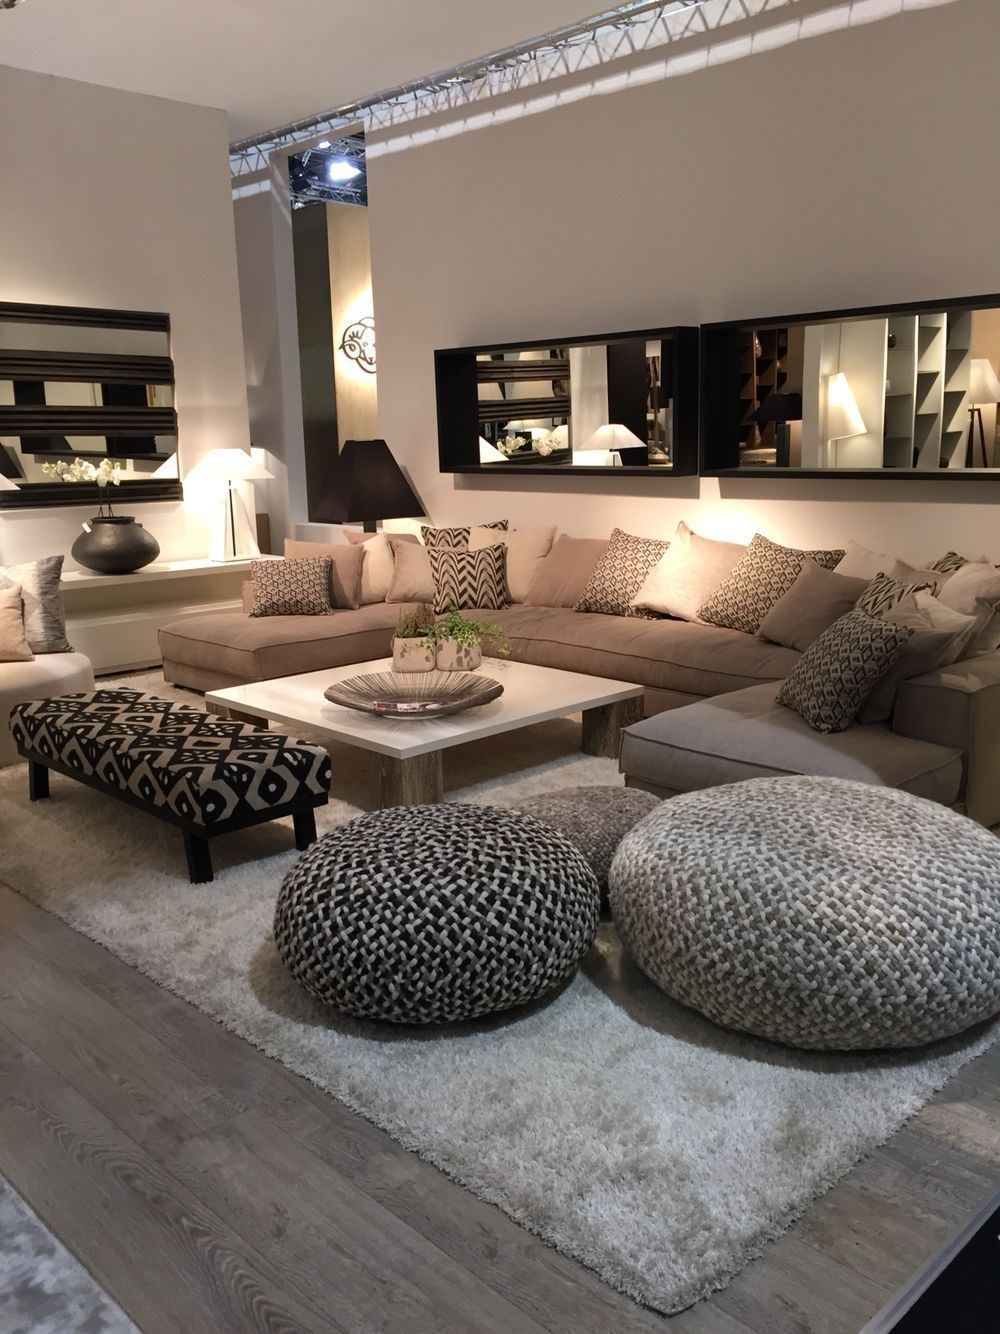 7 Non-Expensive Ideas to Create Luxury Living Room